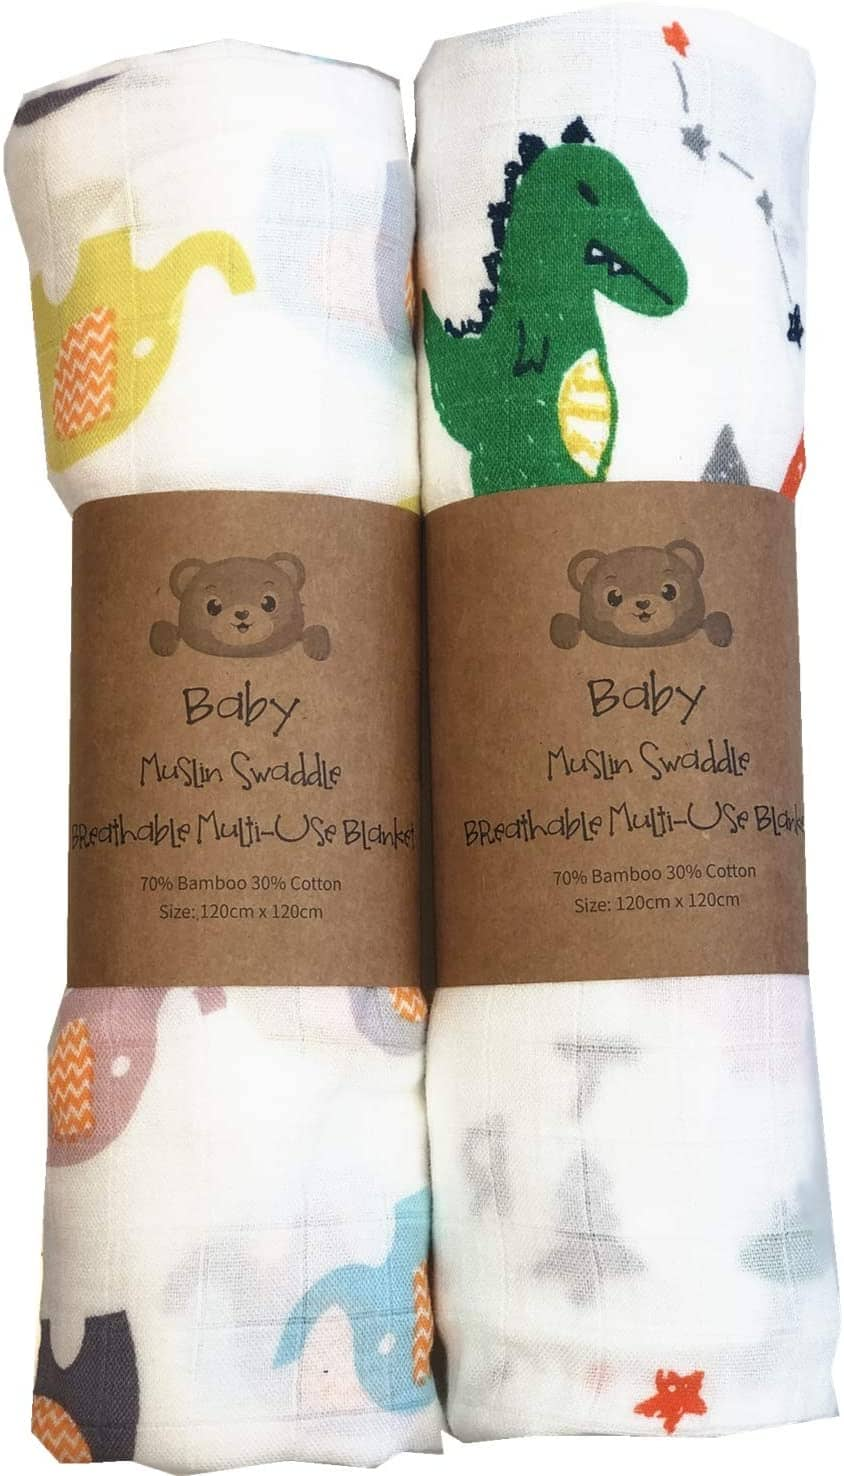 Best Home And Baby Extra Large Muslin Swaddle Blankets, Dinosaur & Elephant